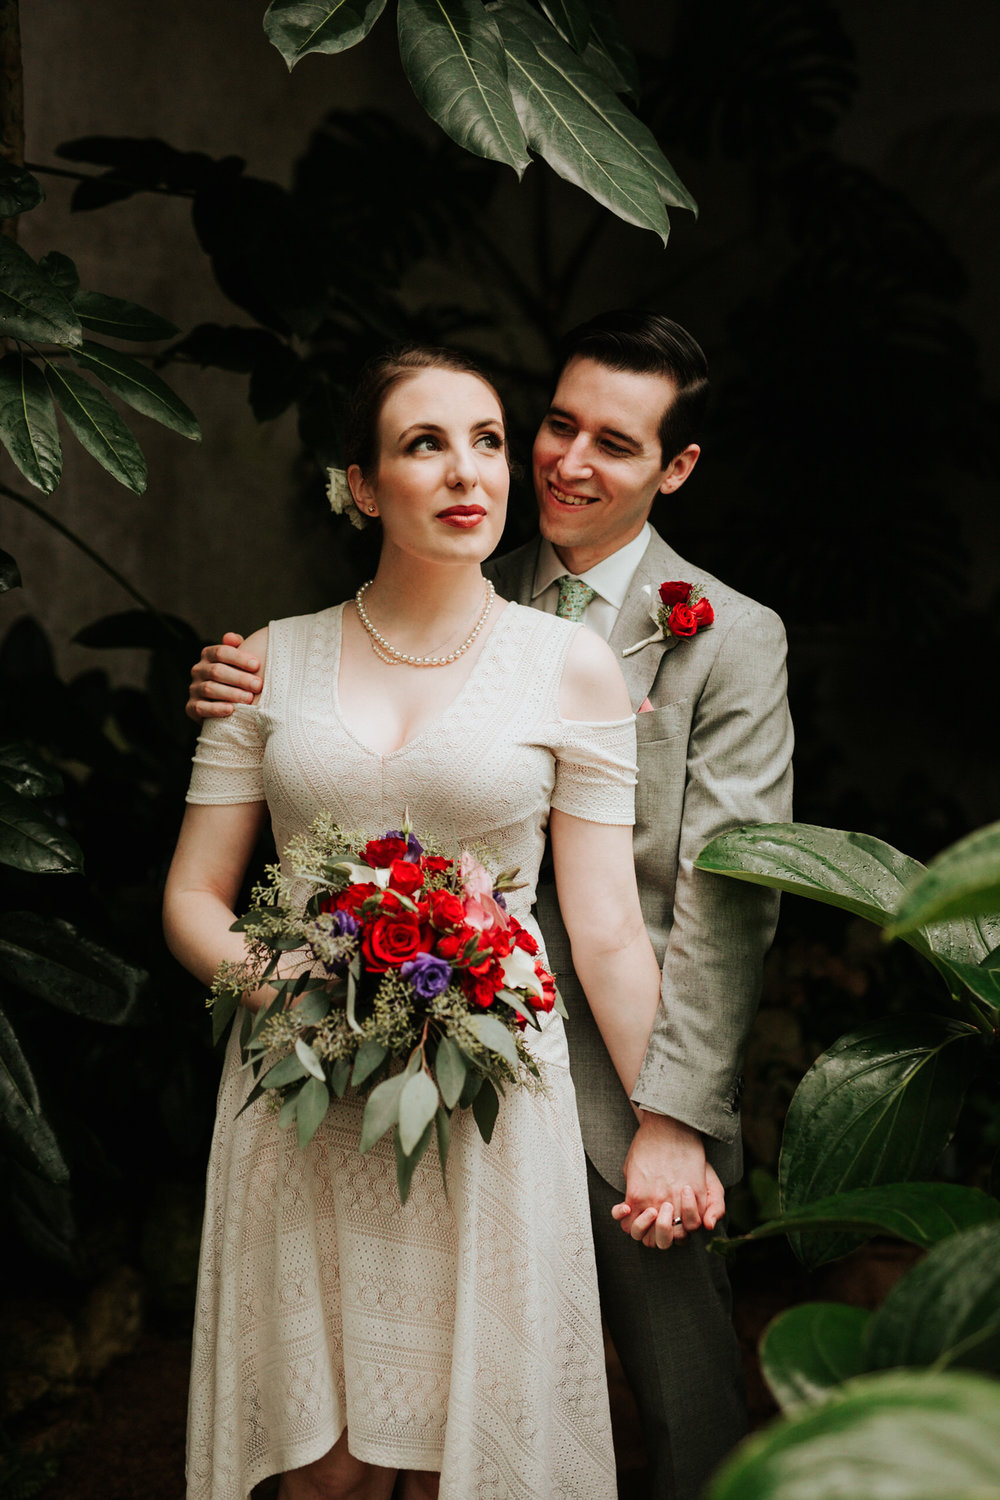 Rainy San Antonio Botanical Garden Wedding